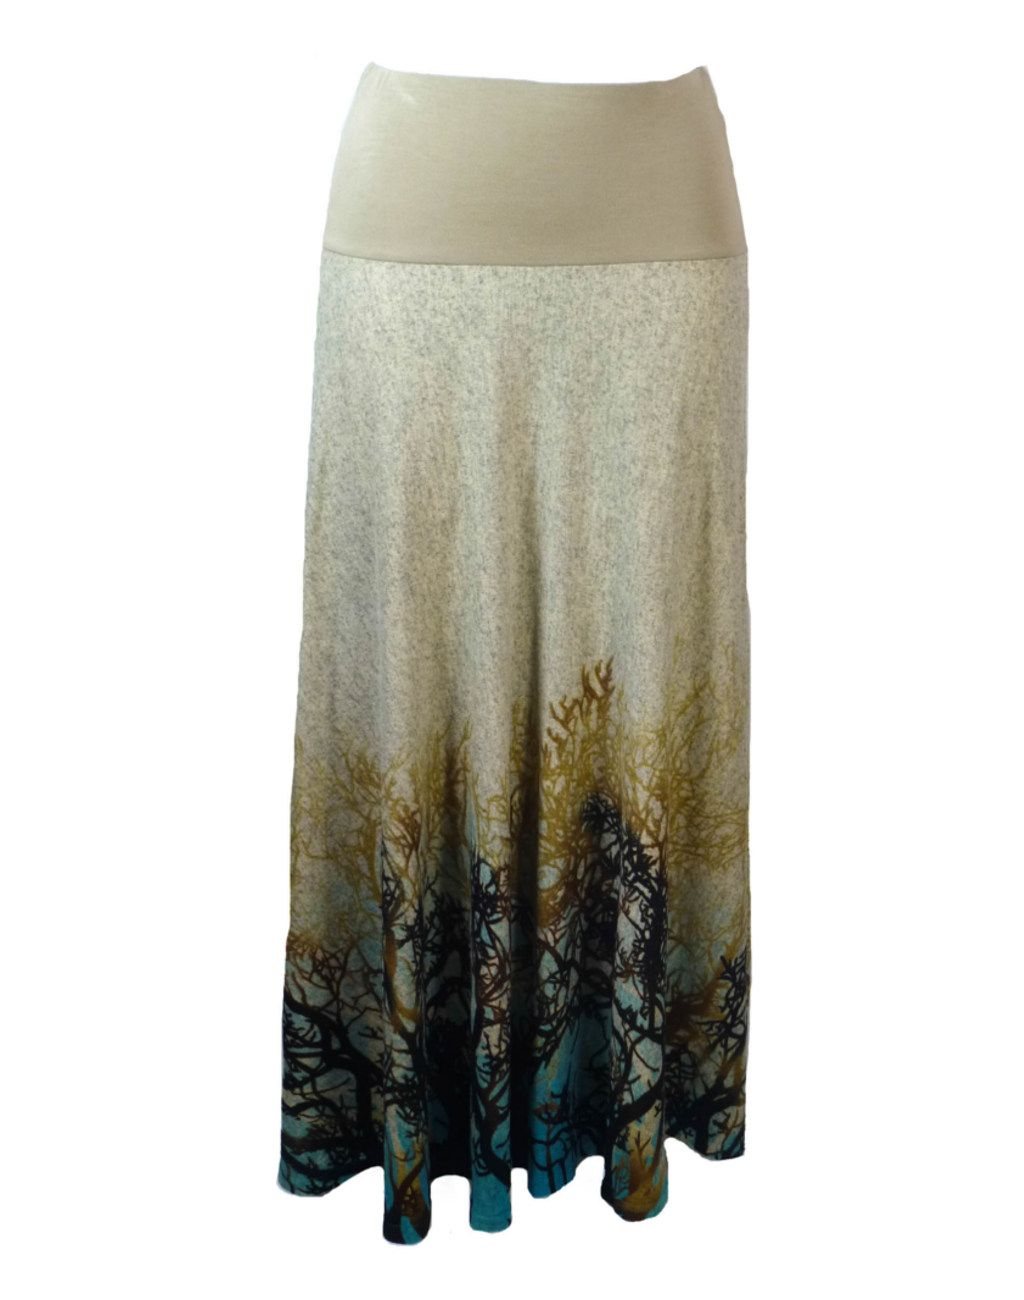 Mystical Forest Print Long Skirt M/L